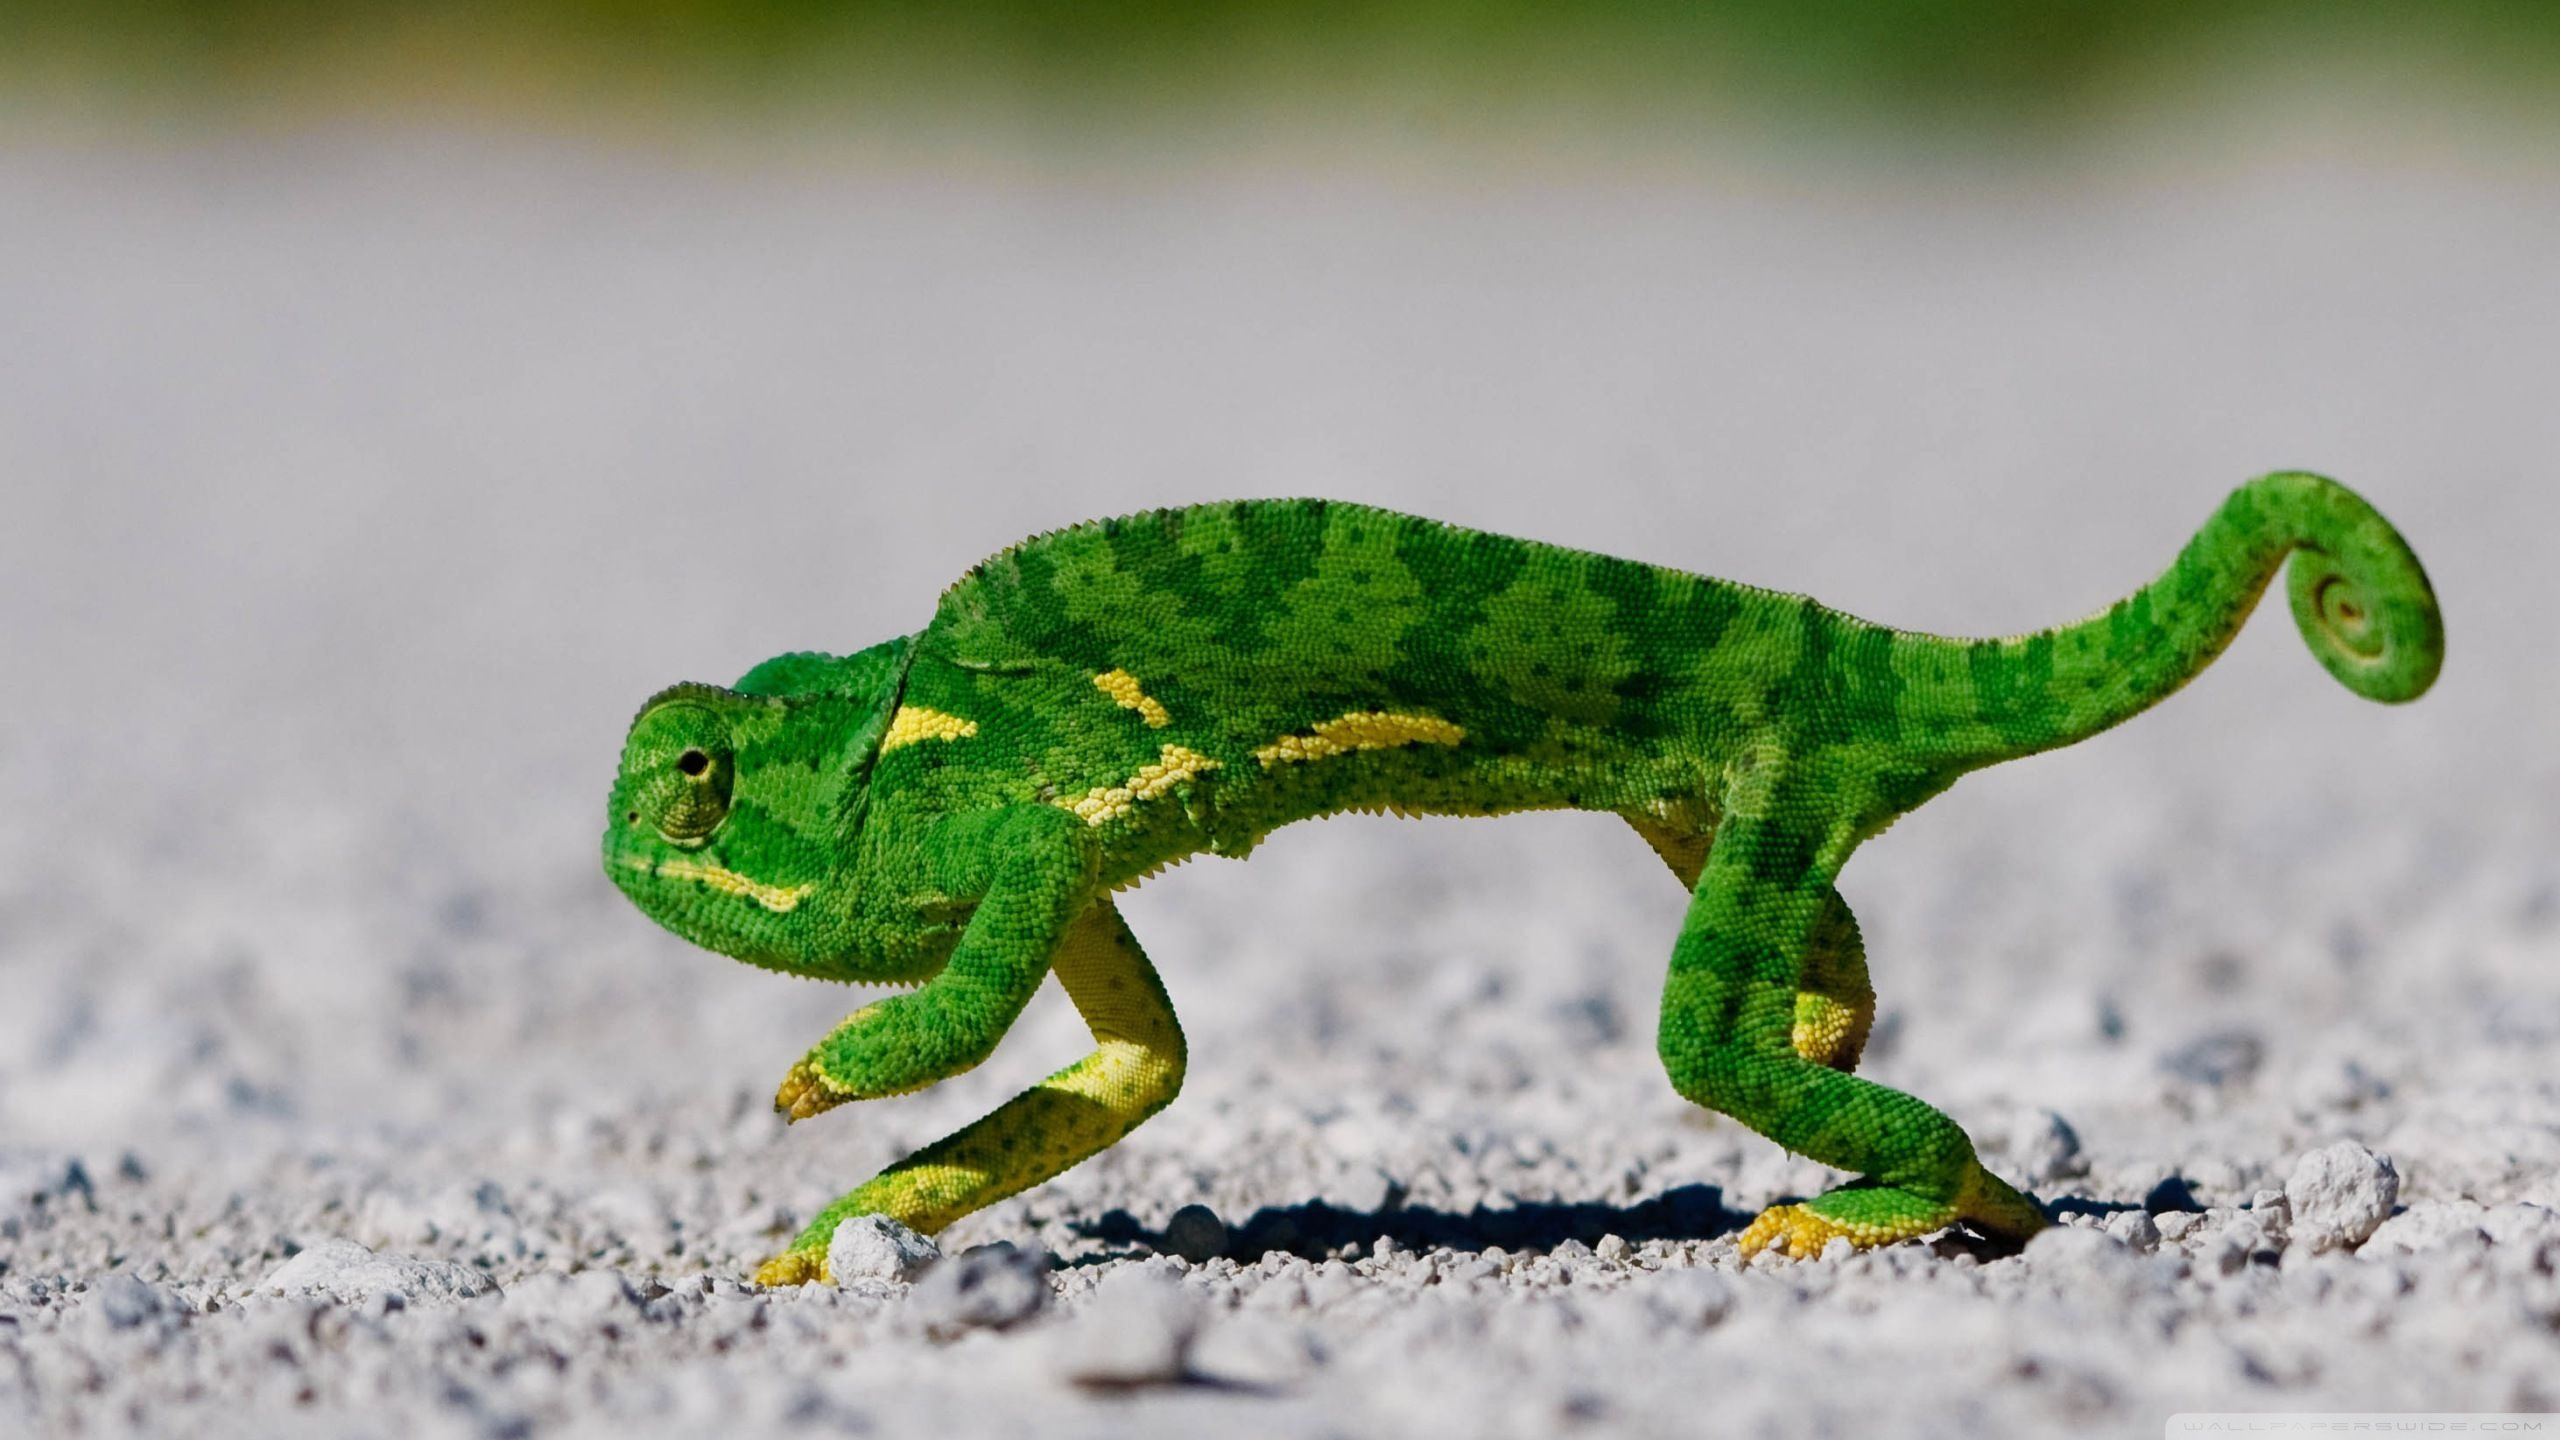 Awesome Chameleon free wallpaper ID:462605 for hd 2560x1440 computer